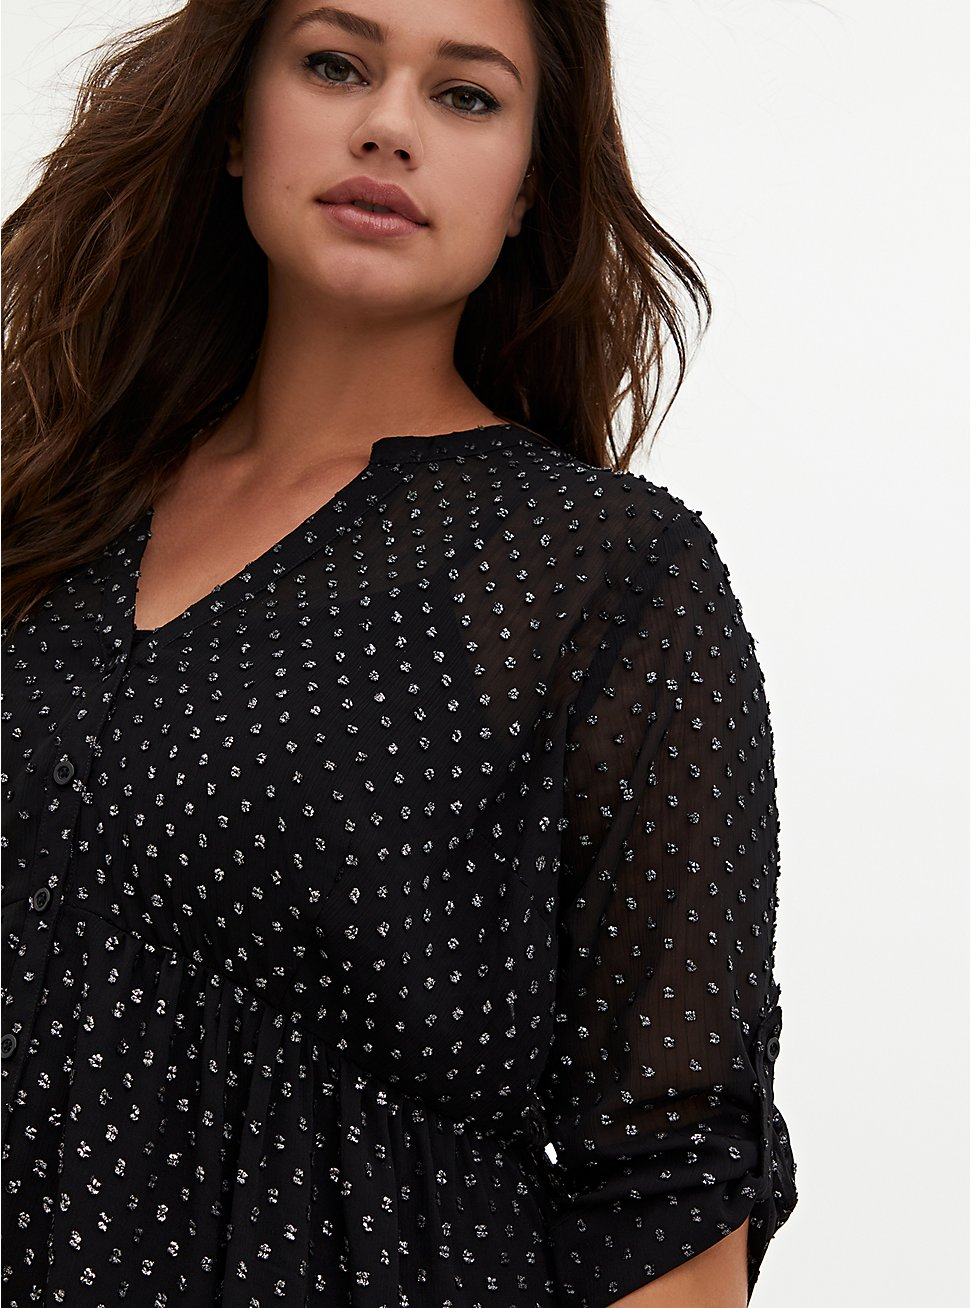 Lexie - Black Metallic Clip Dot Chiffon Hi-Lo Babydoll Tunic, DEEP BLACK, hi-res